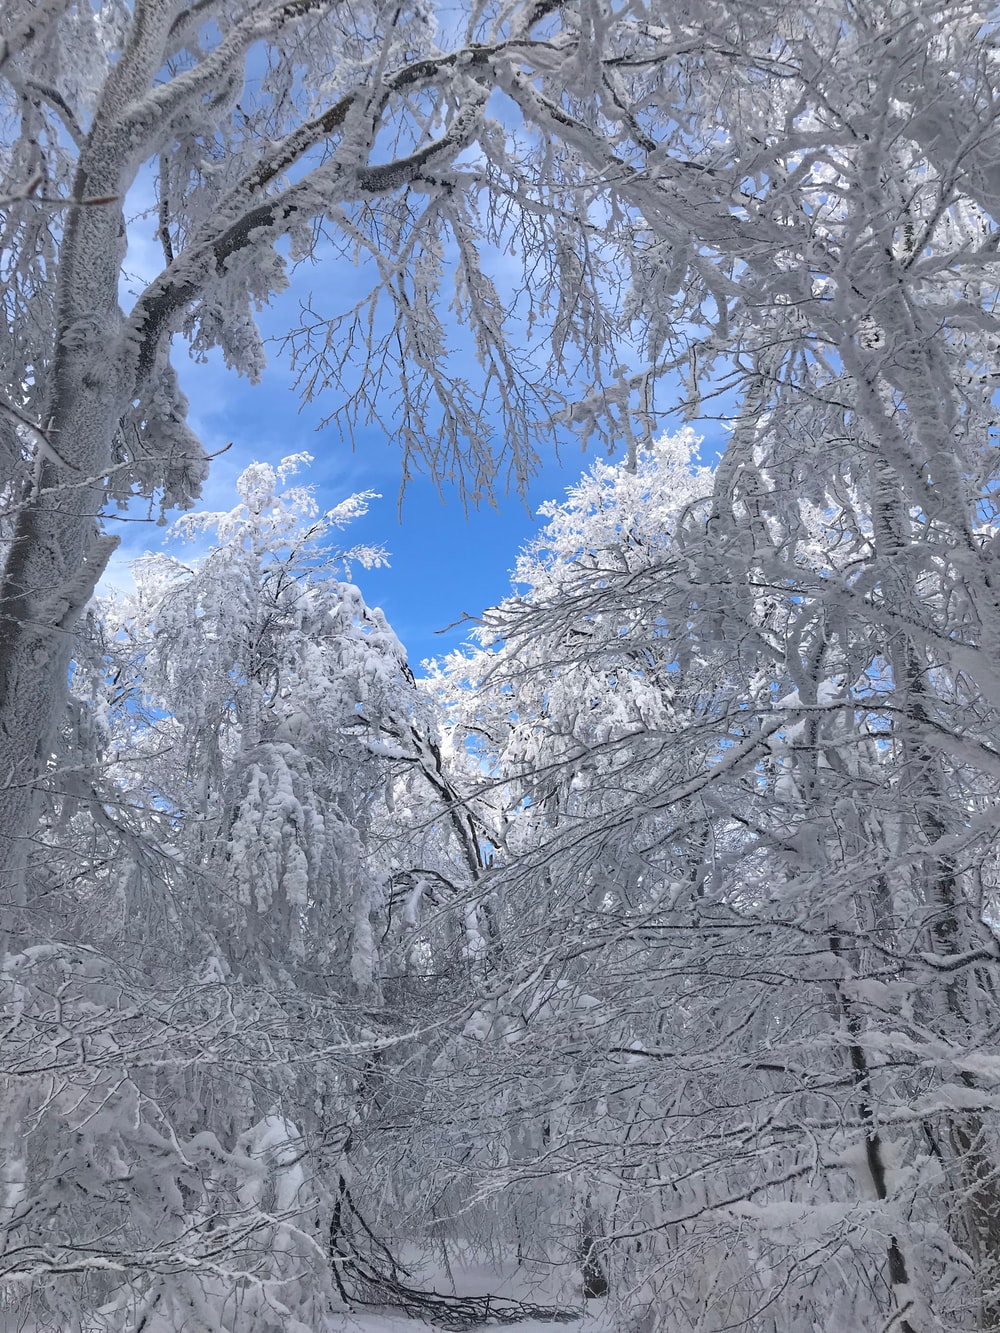 snow covered forest under blue sky at daytime